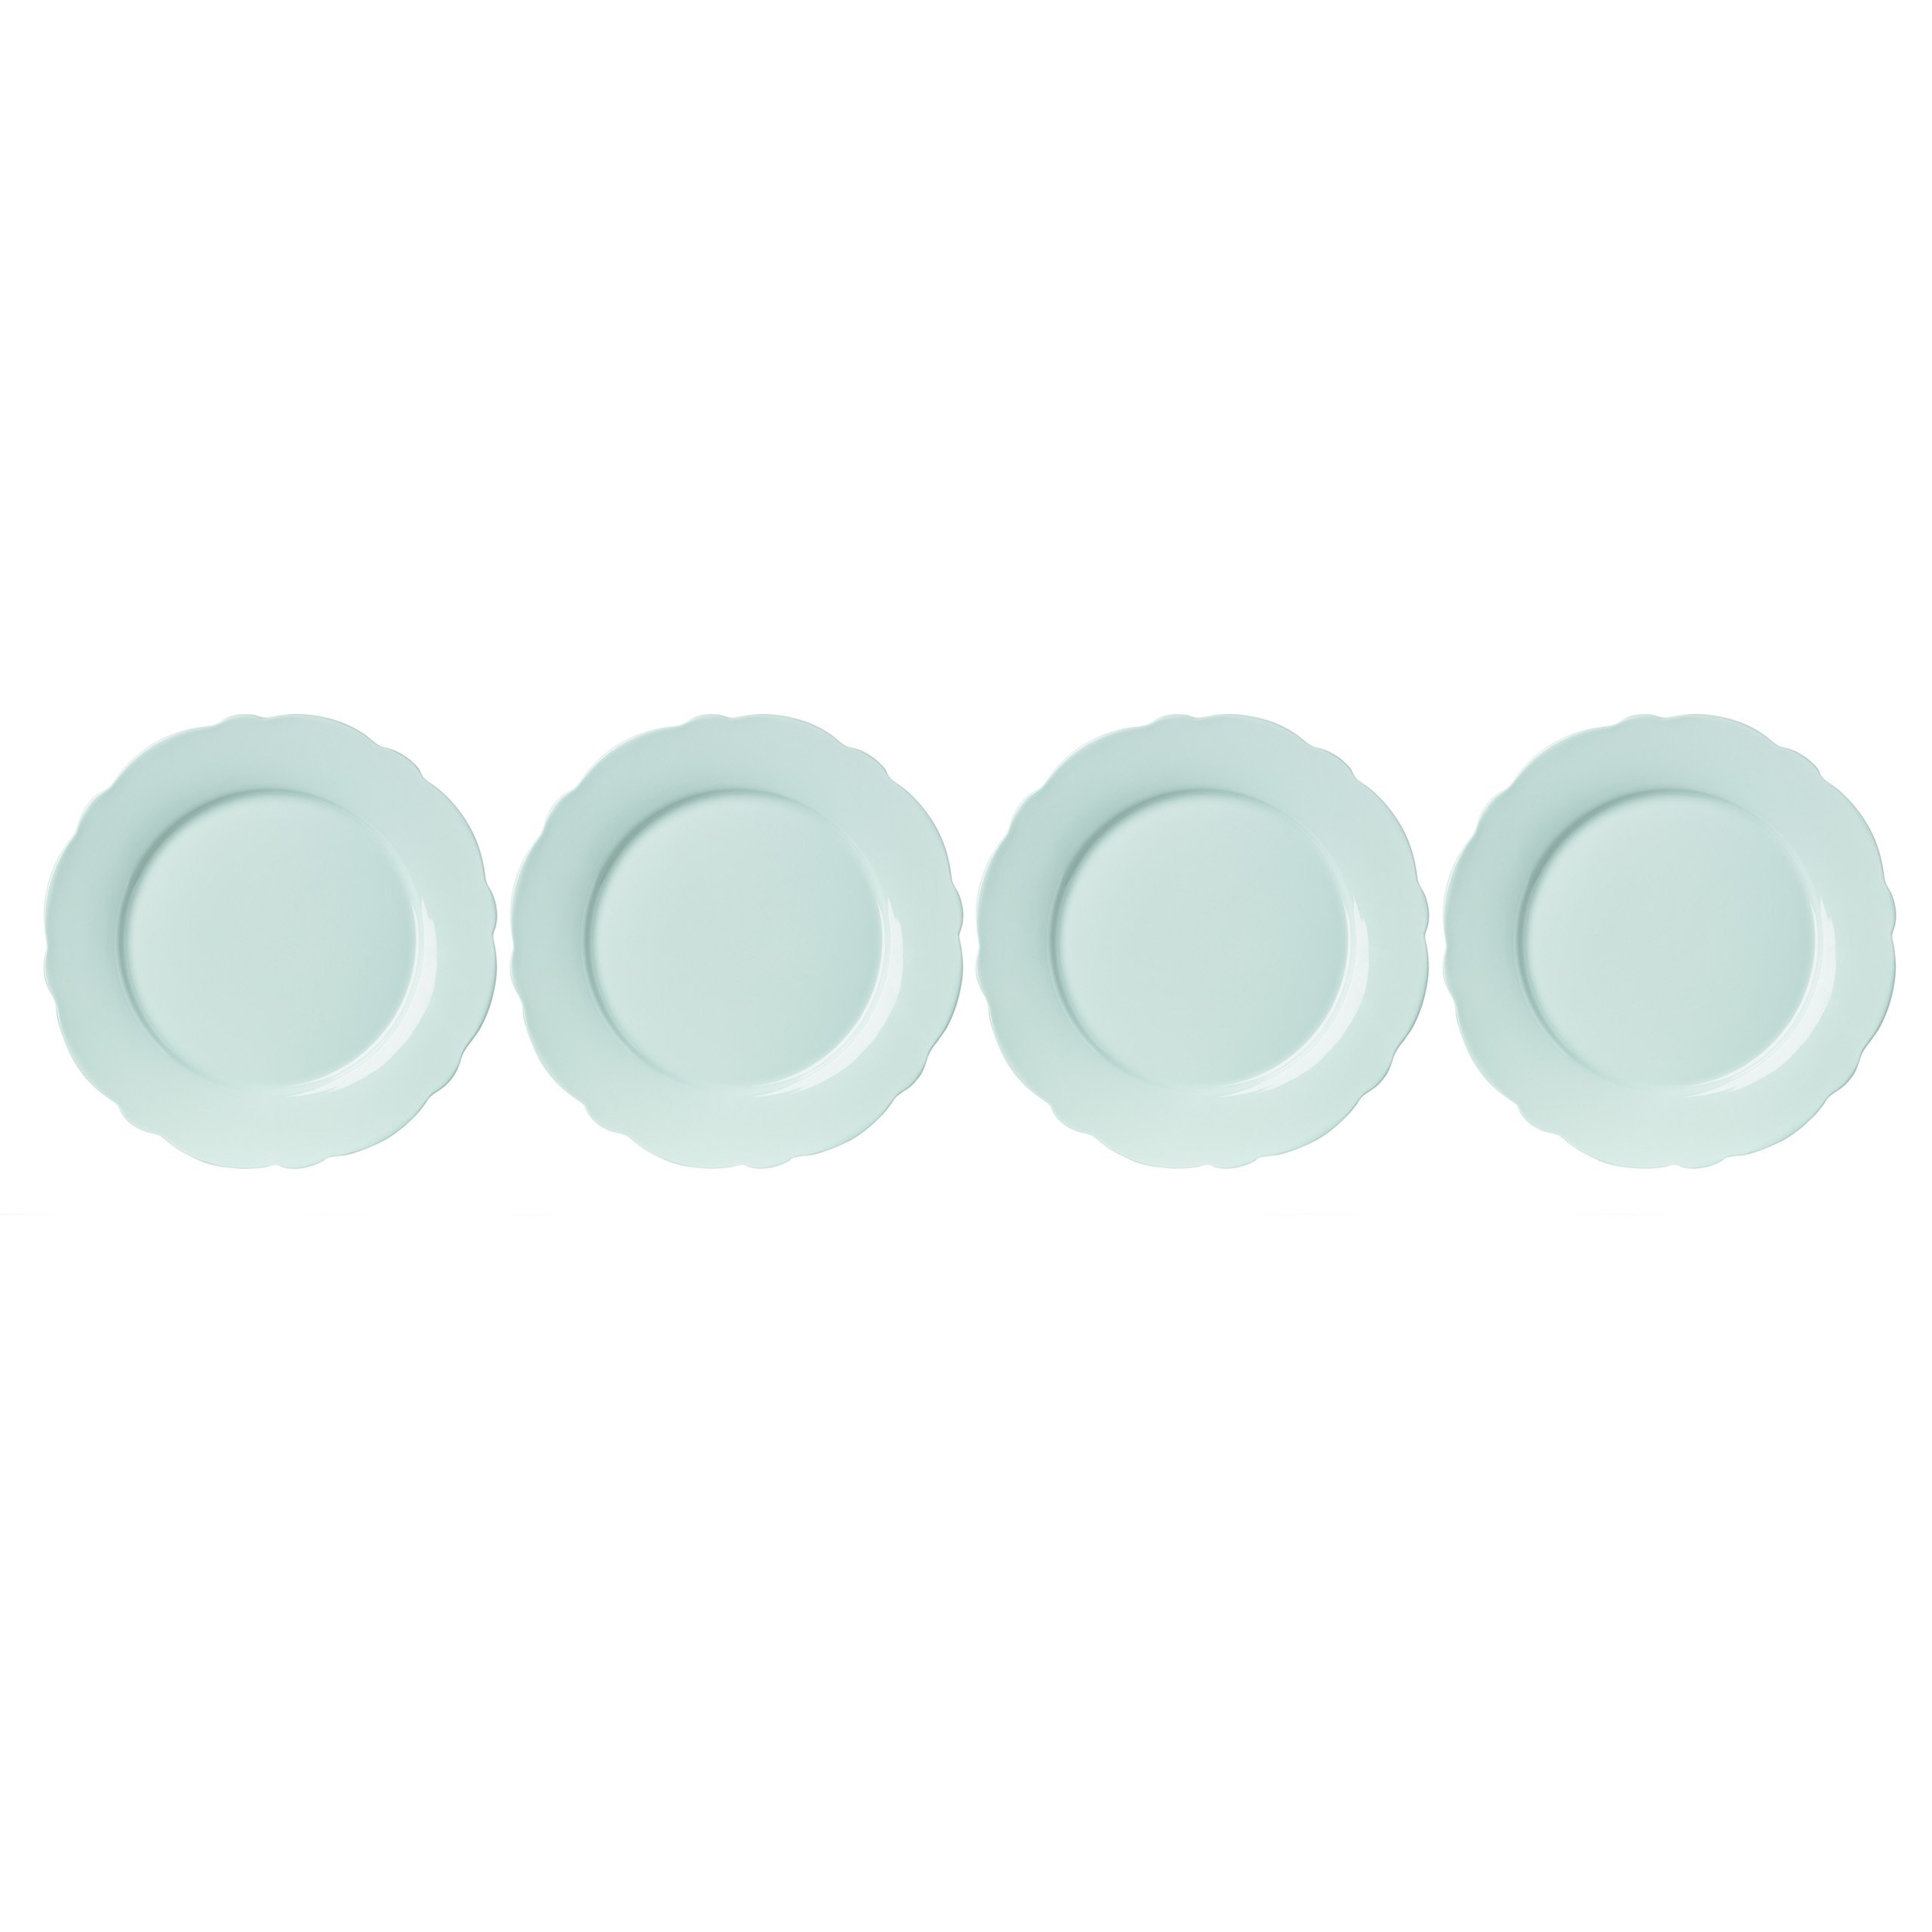 Lenox Butterfly Meadow Solid Green Dinner Plates (Set of 4)